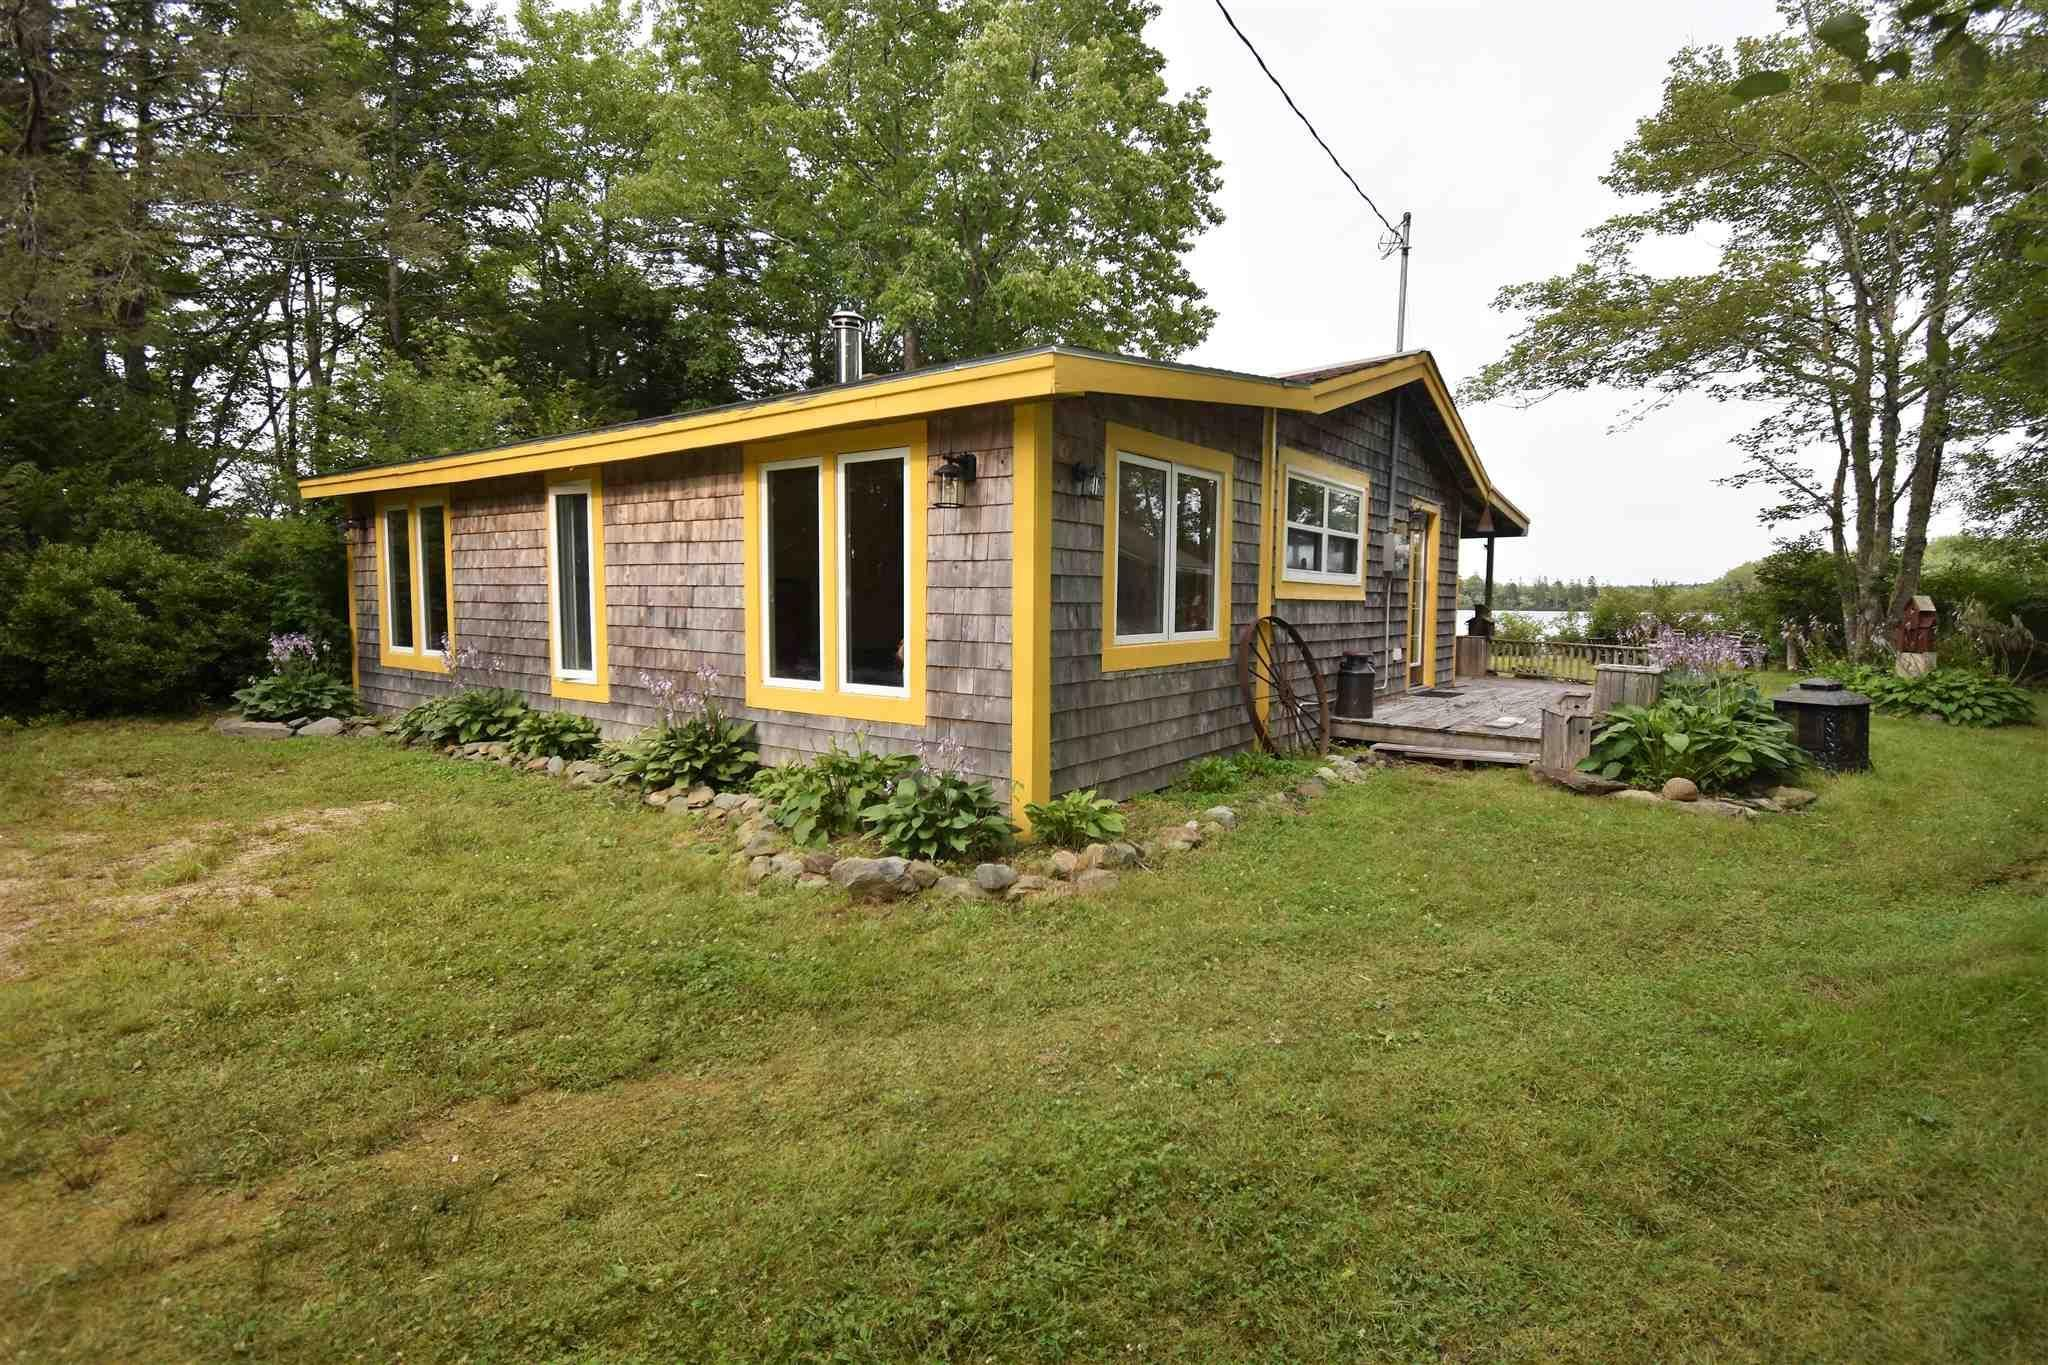 Main Photo: 78 Amero Lake Drive in Doucetteville: 401-Digby County Residential for sale (Annapolis Valley)  : MLS®# 202120279